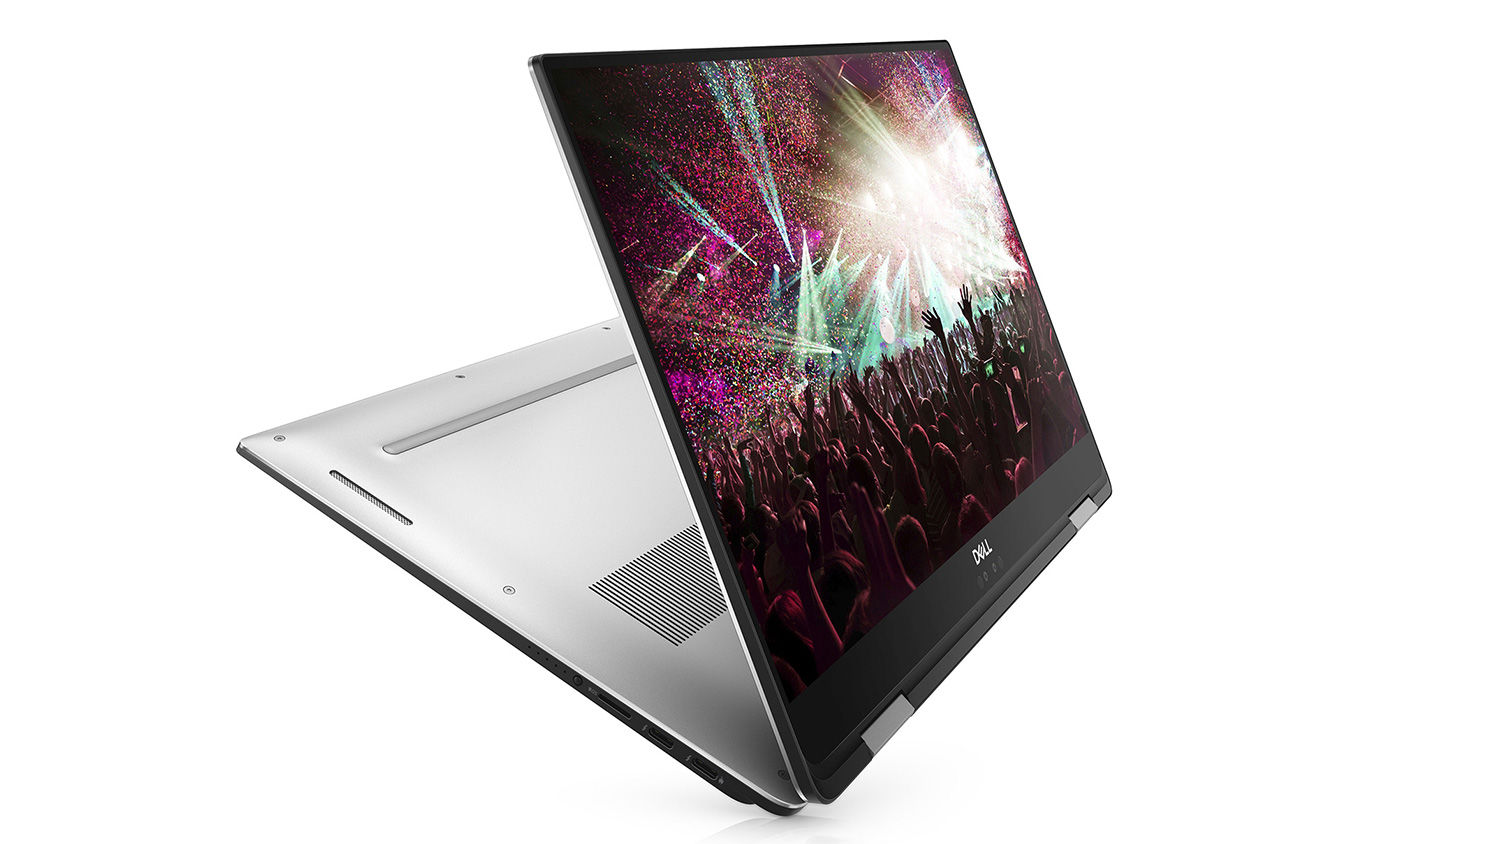 Dell's XPS 15 2-in-1 has improved graphics performance